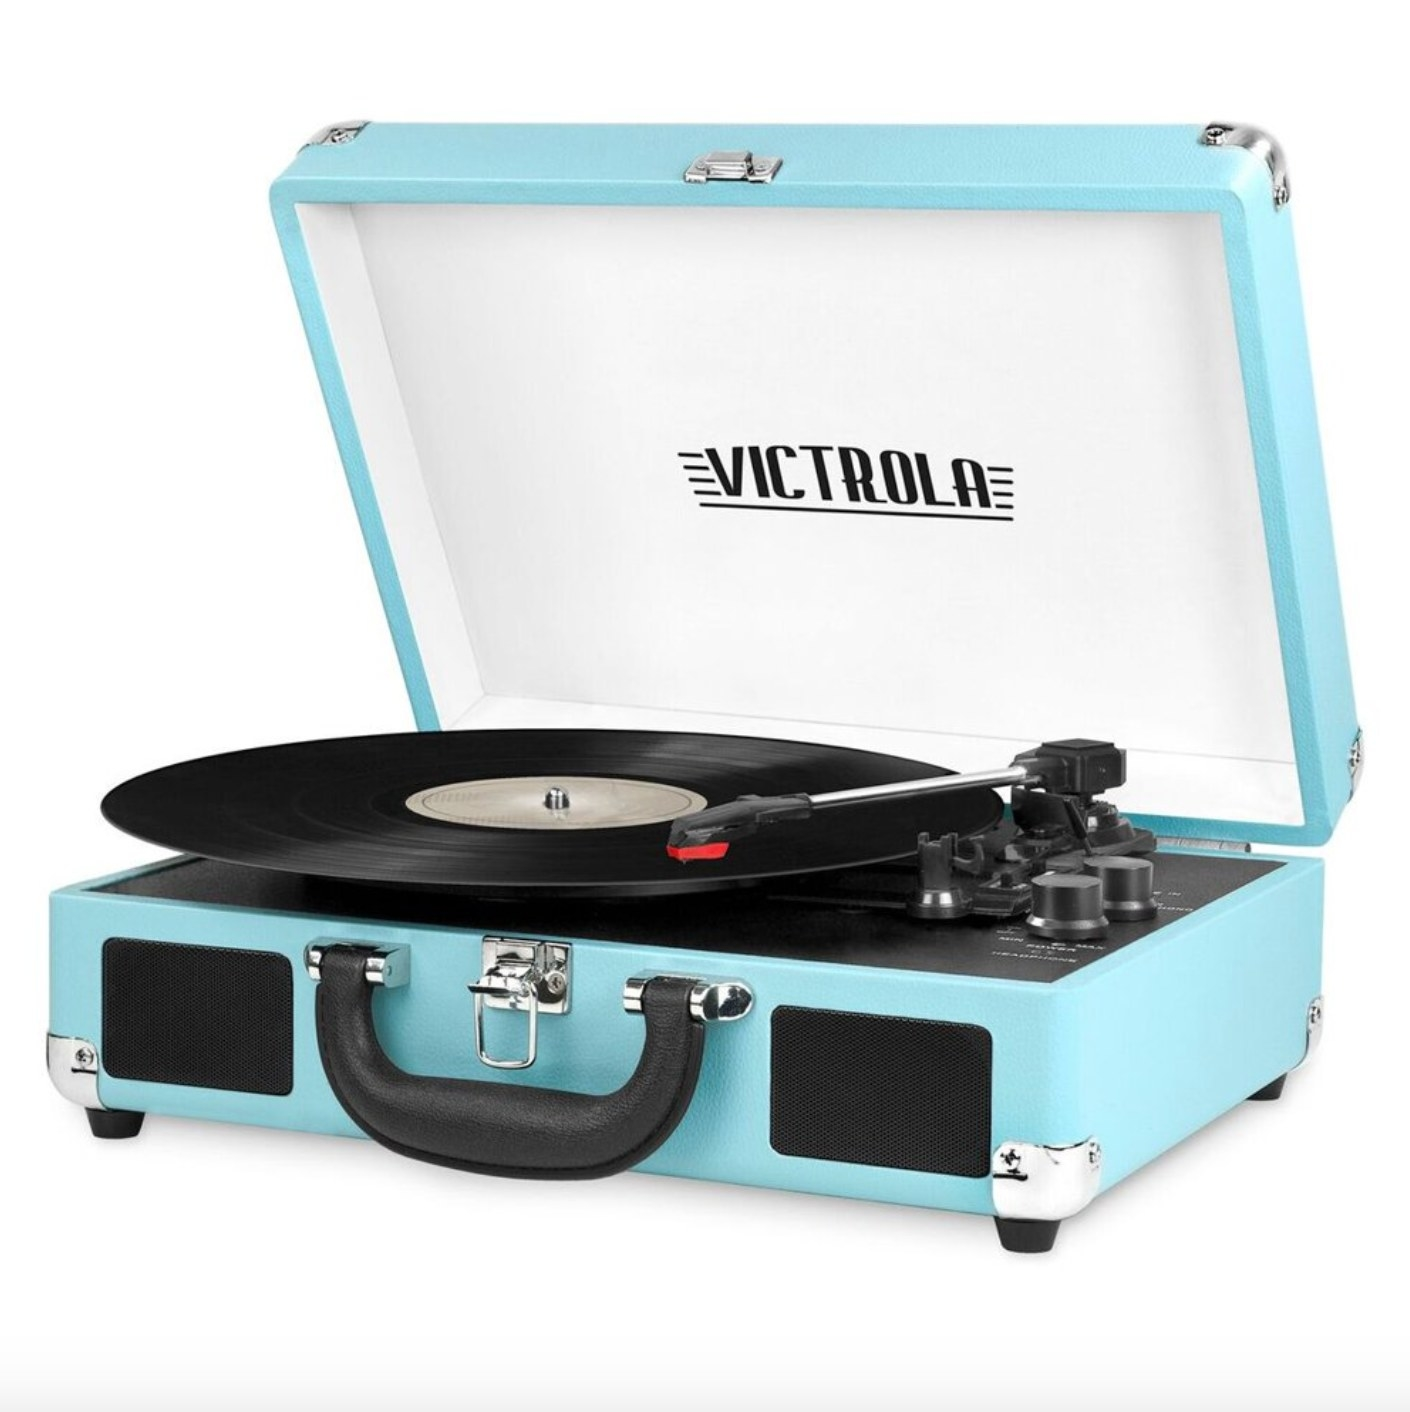 The portable record player in turquoise